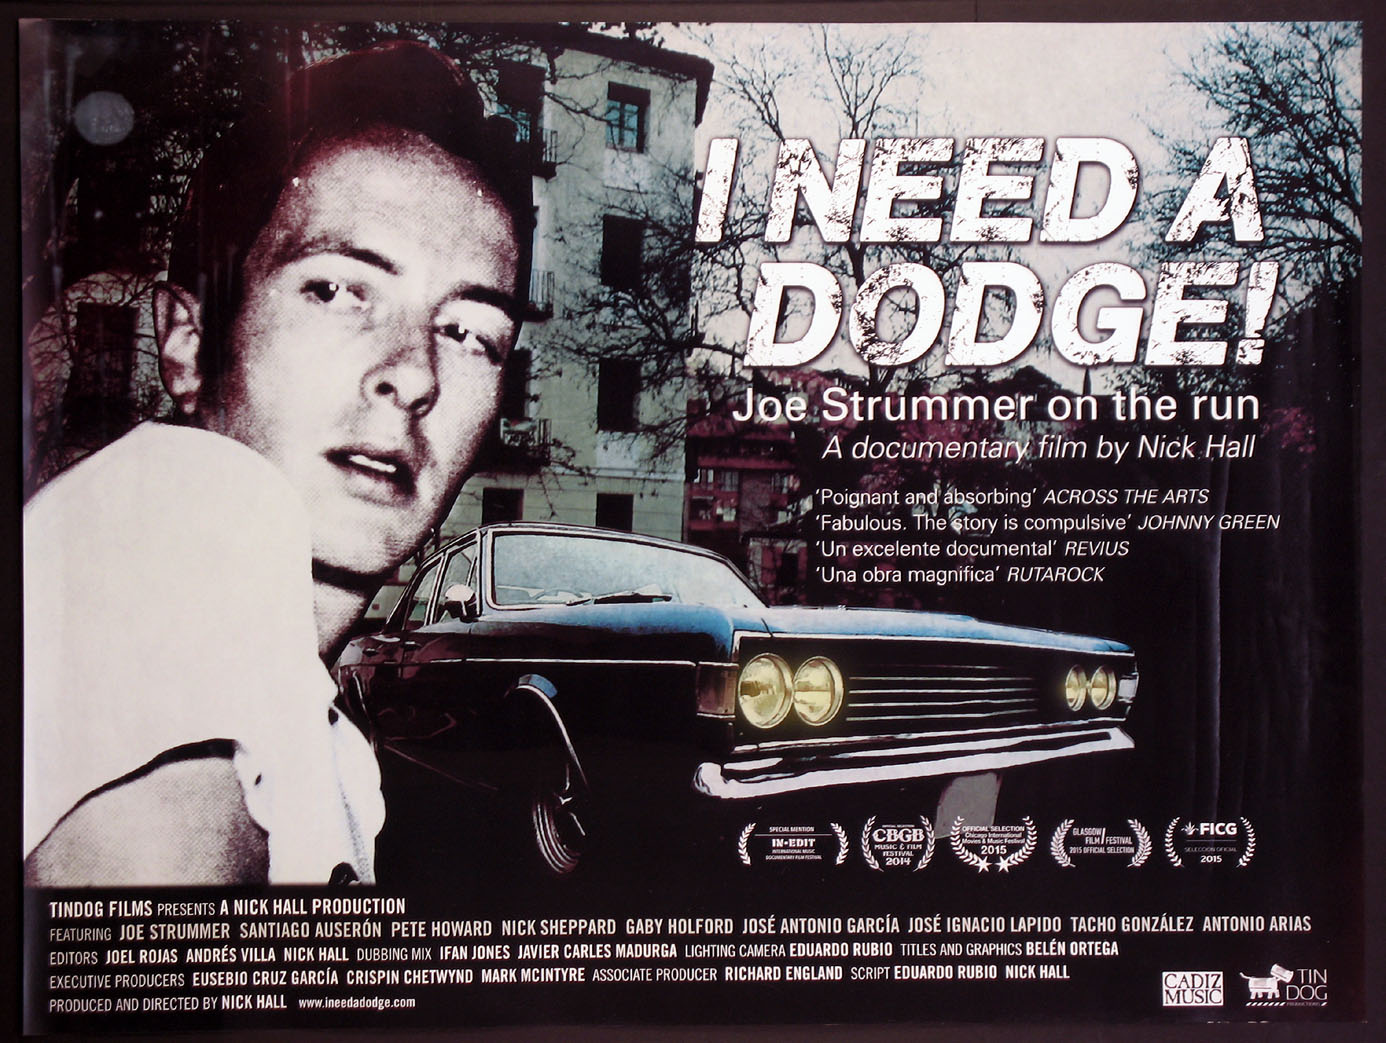 I NEED A DODGE! JOE STRUMMER ON THE RUN @ FilmPosters.com